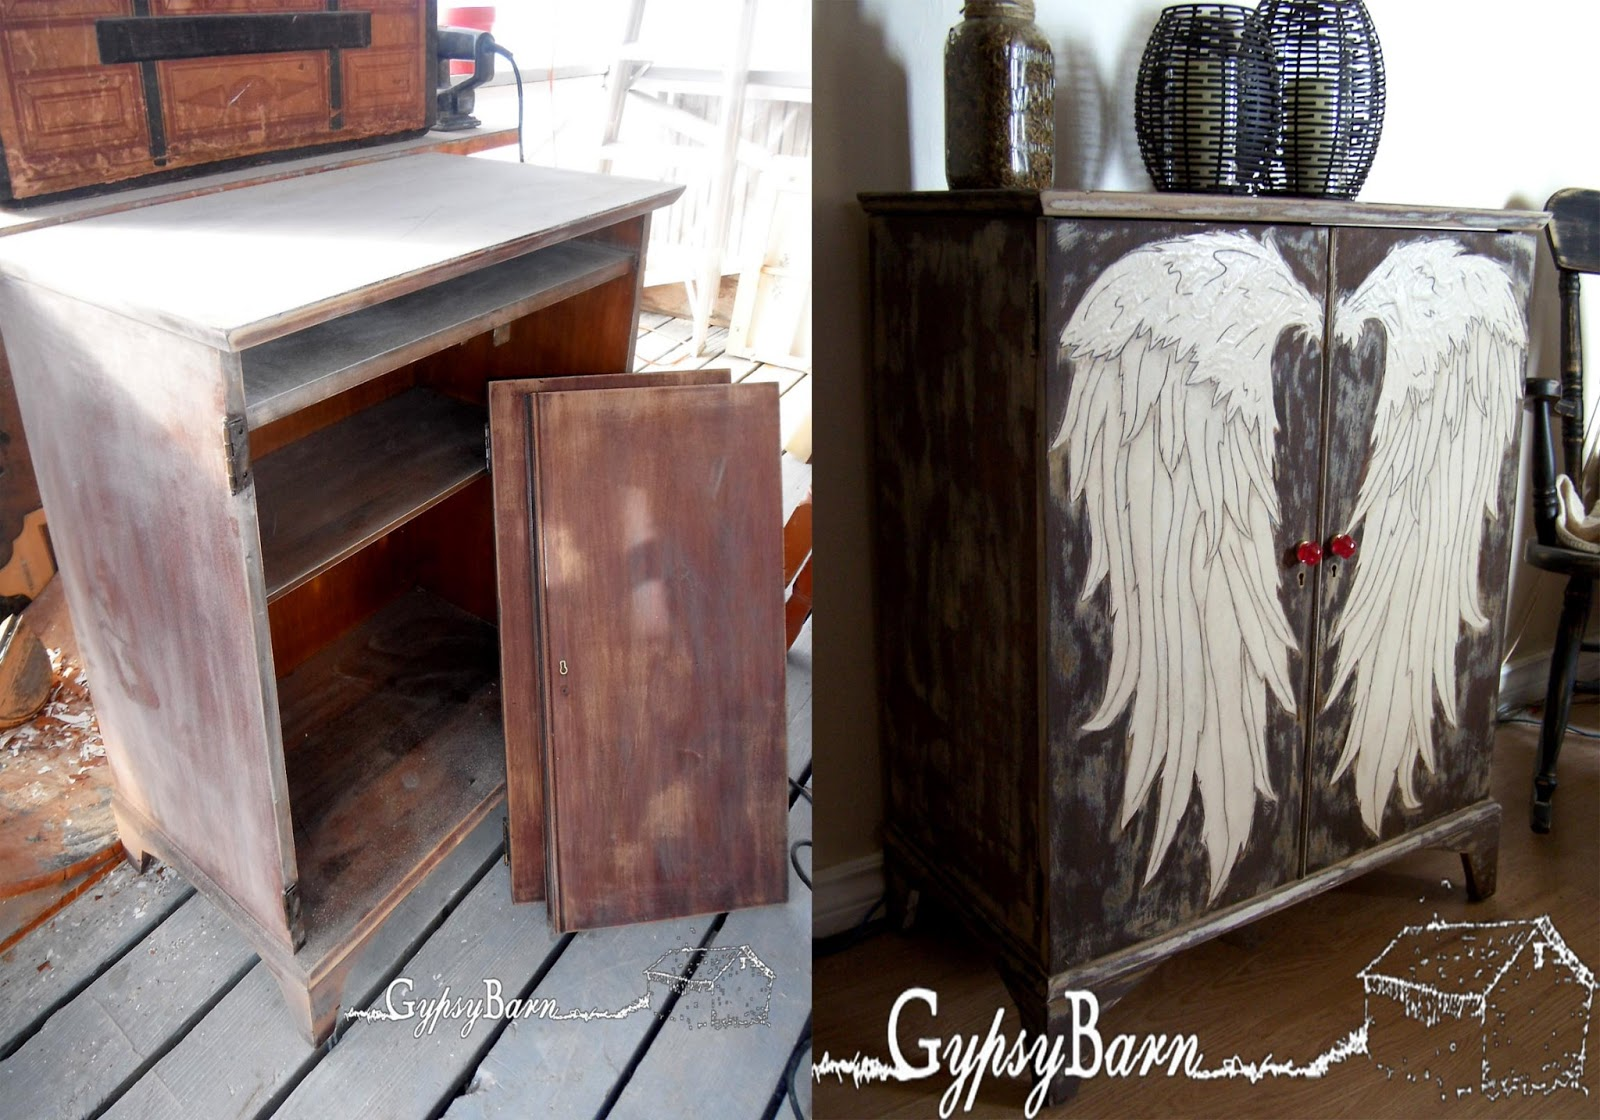 Gypsy Barn The Angel Wing Cubby burning painting